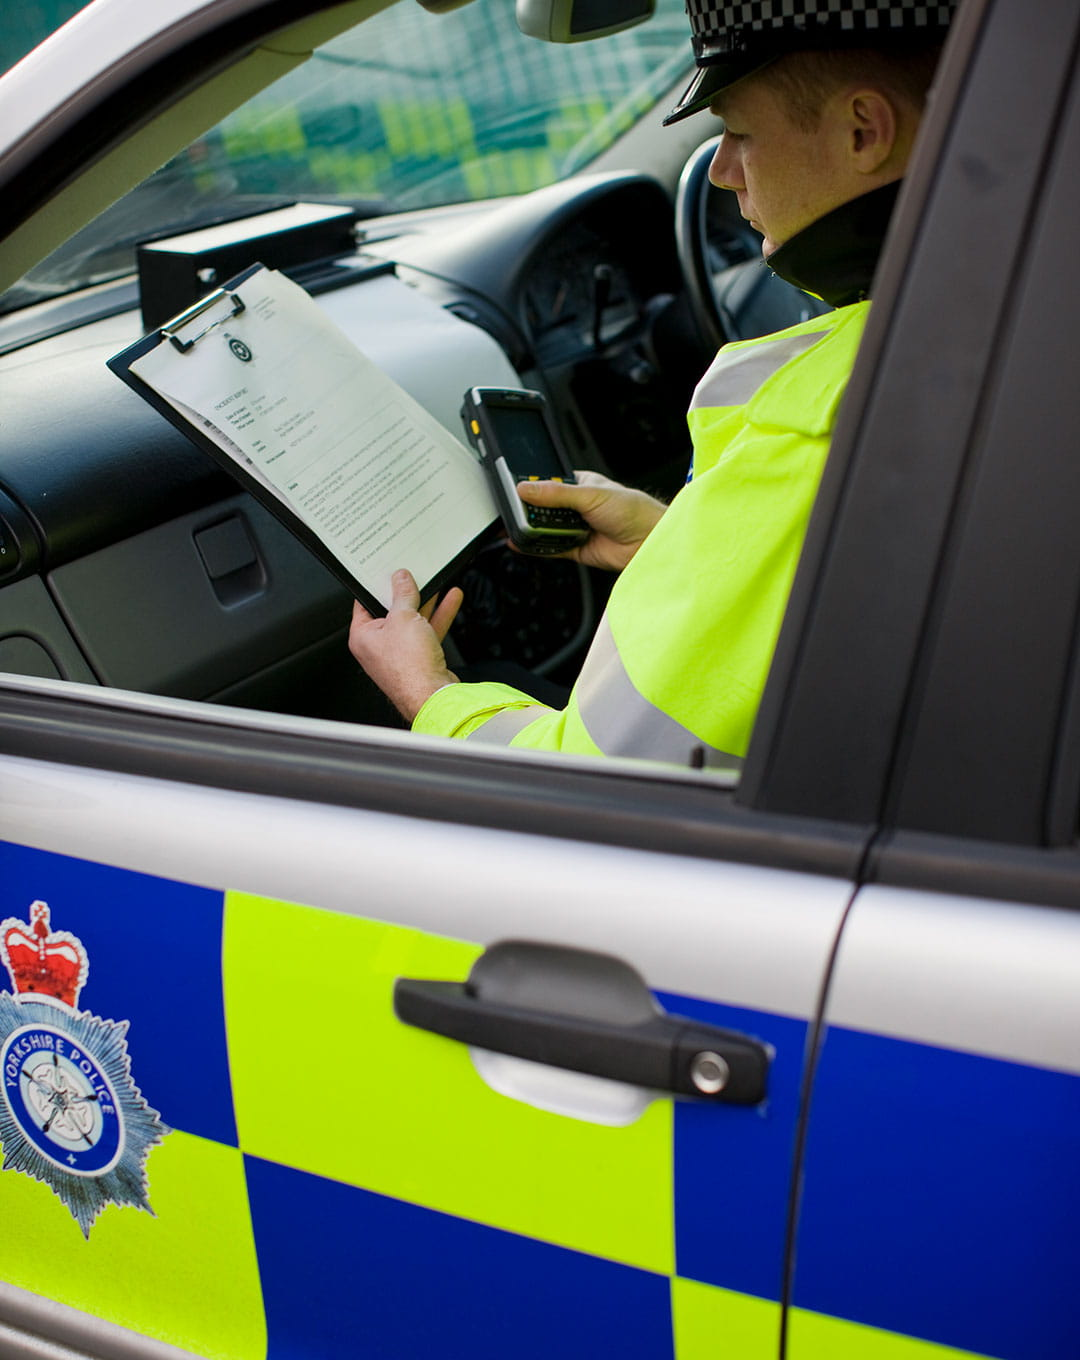 A public sector police officer uses secure web and video conferencing from OmniJoin whilst in a car